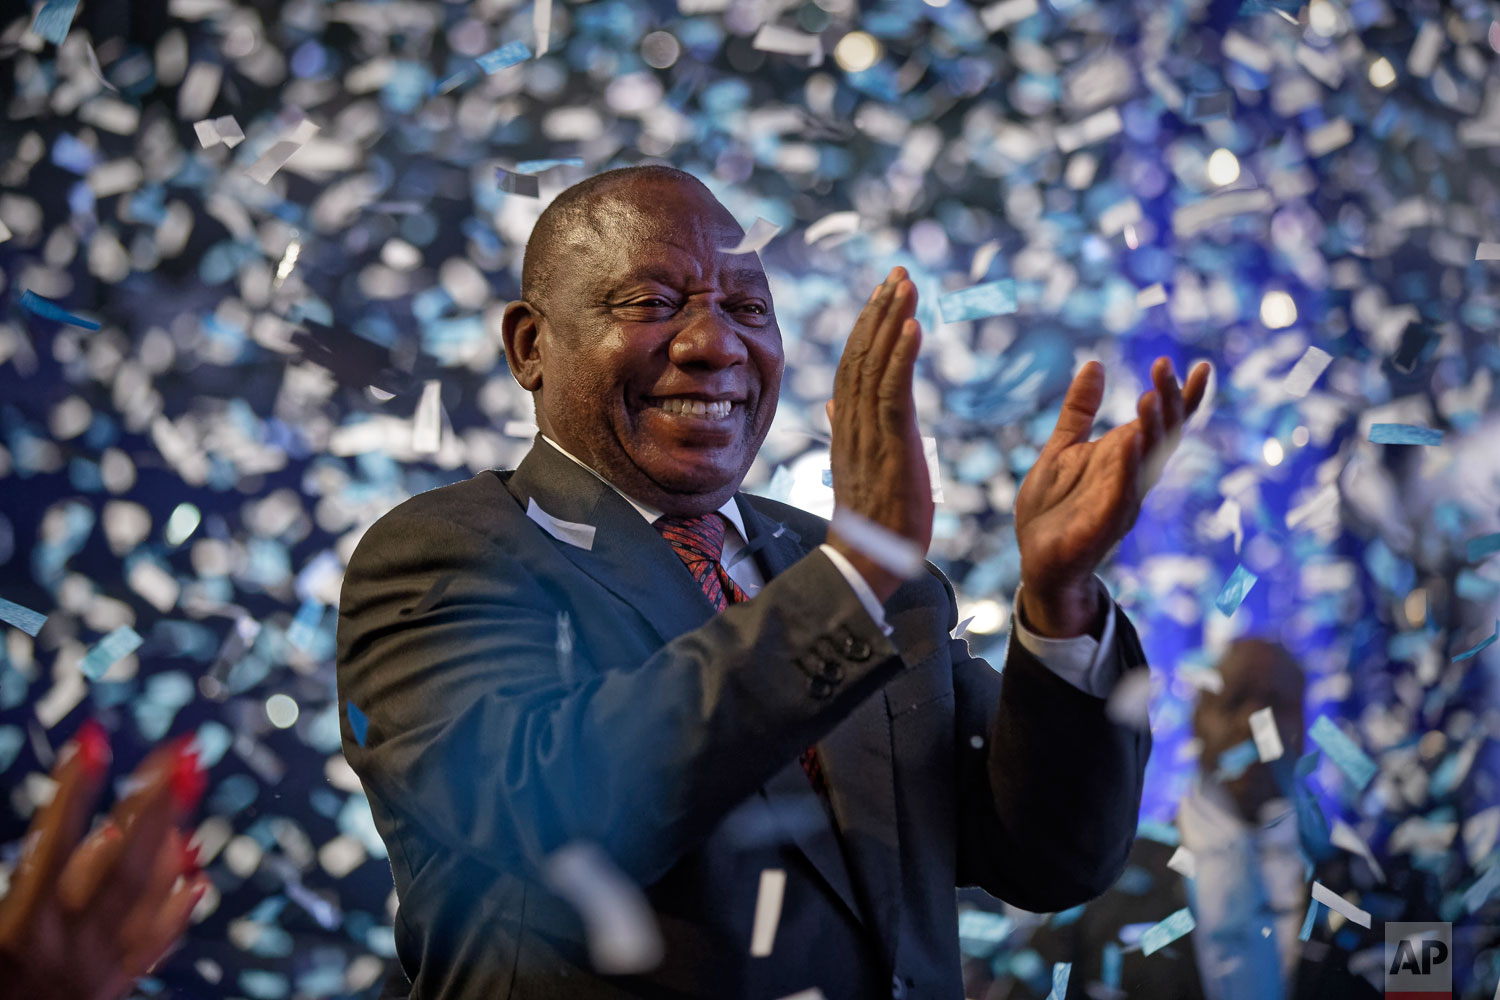 President Cyril Ramaphosa applauds as confetti is launched at the end of the results ceremony at the Independent Electoral Commission Results Center in Pretoria, South Africa Saturday, May 11, 2019.  (AP Photo/Ben Curtis)